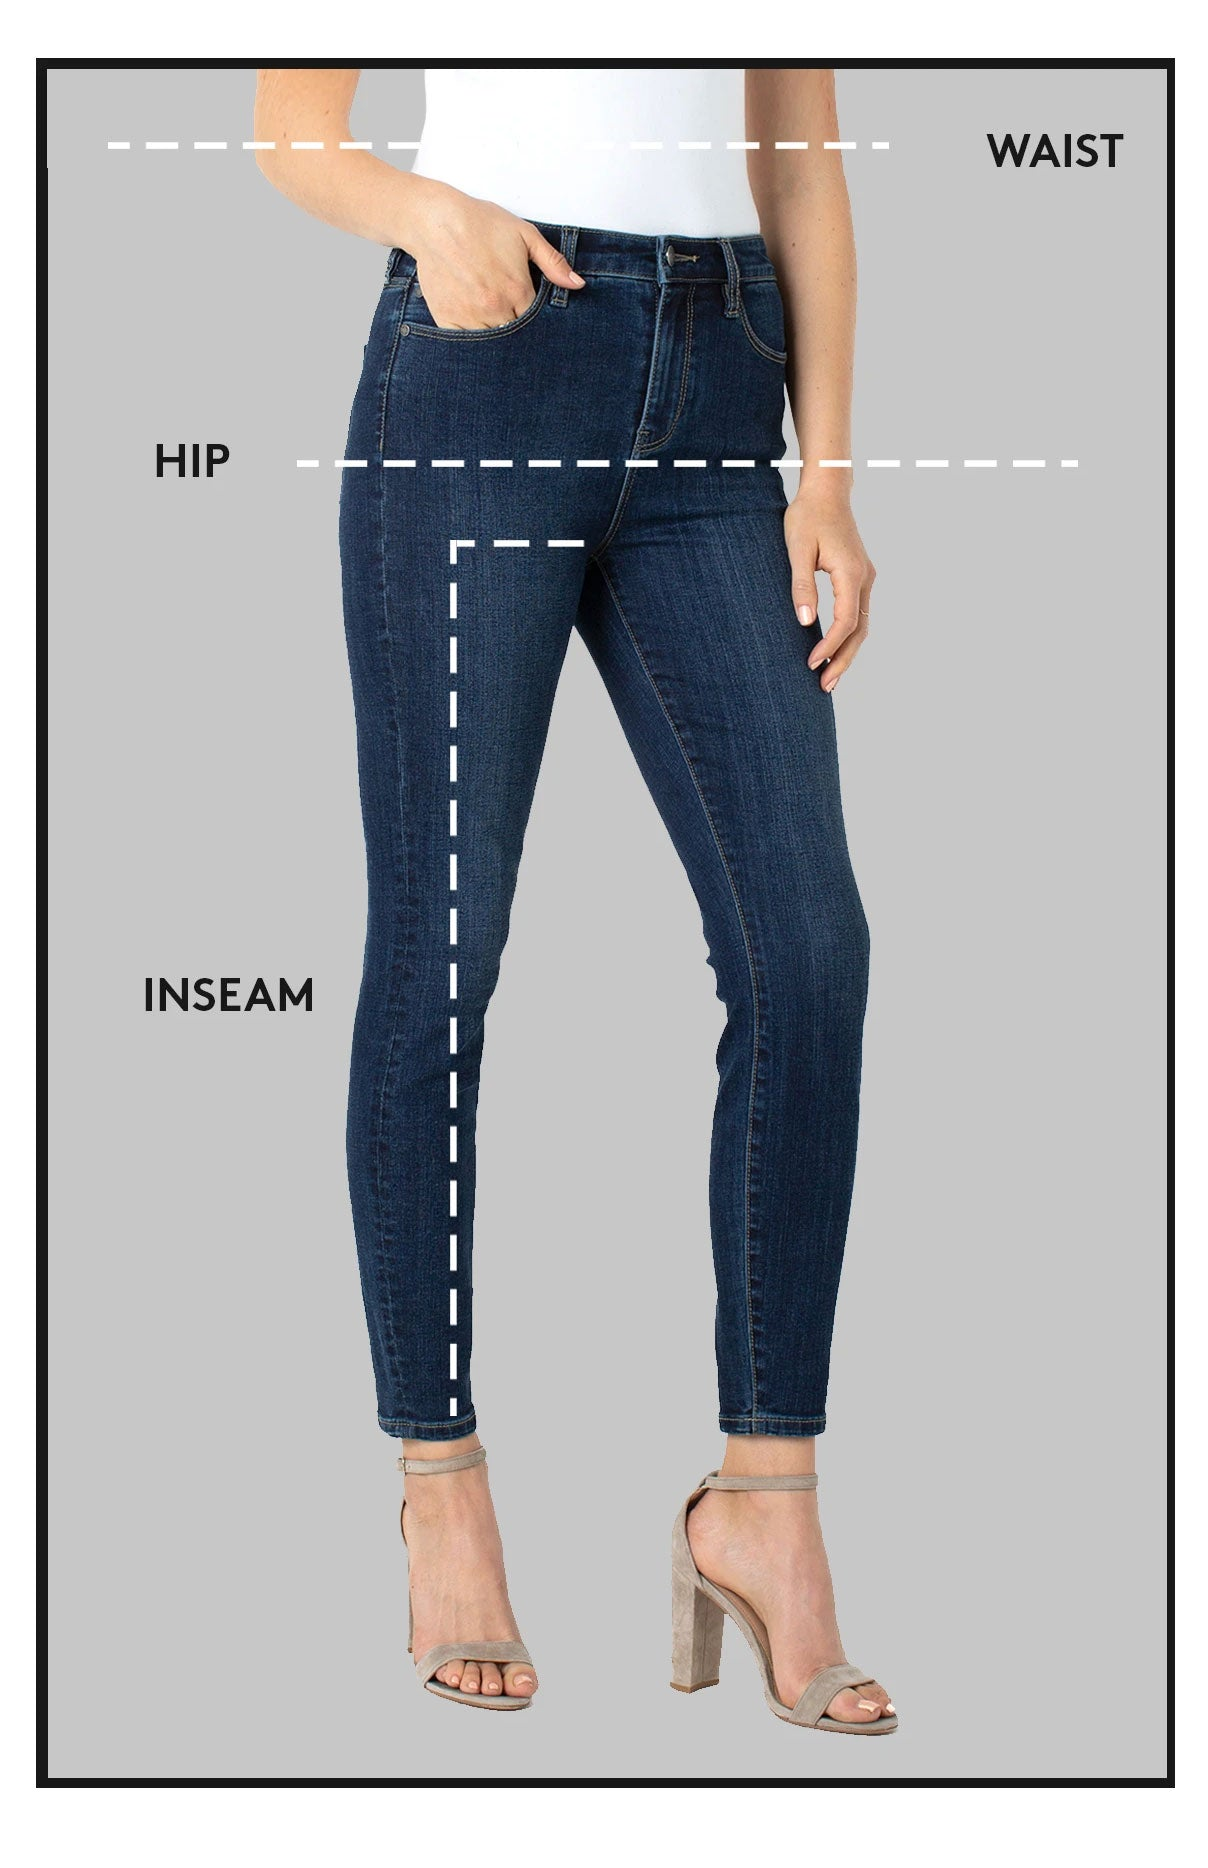 How to Measure Waist Hip and Inseam